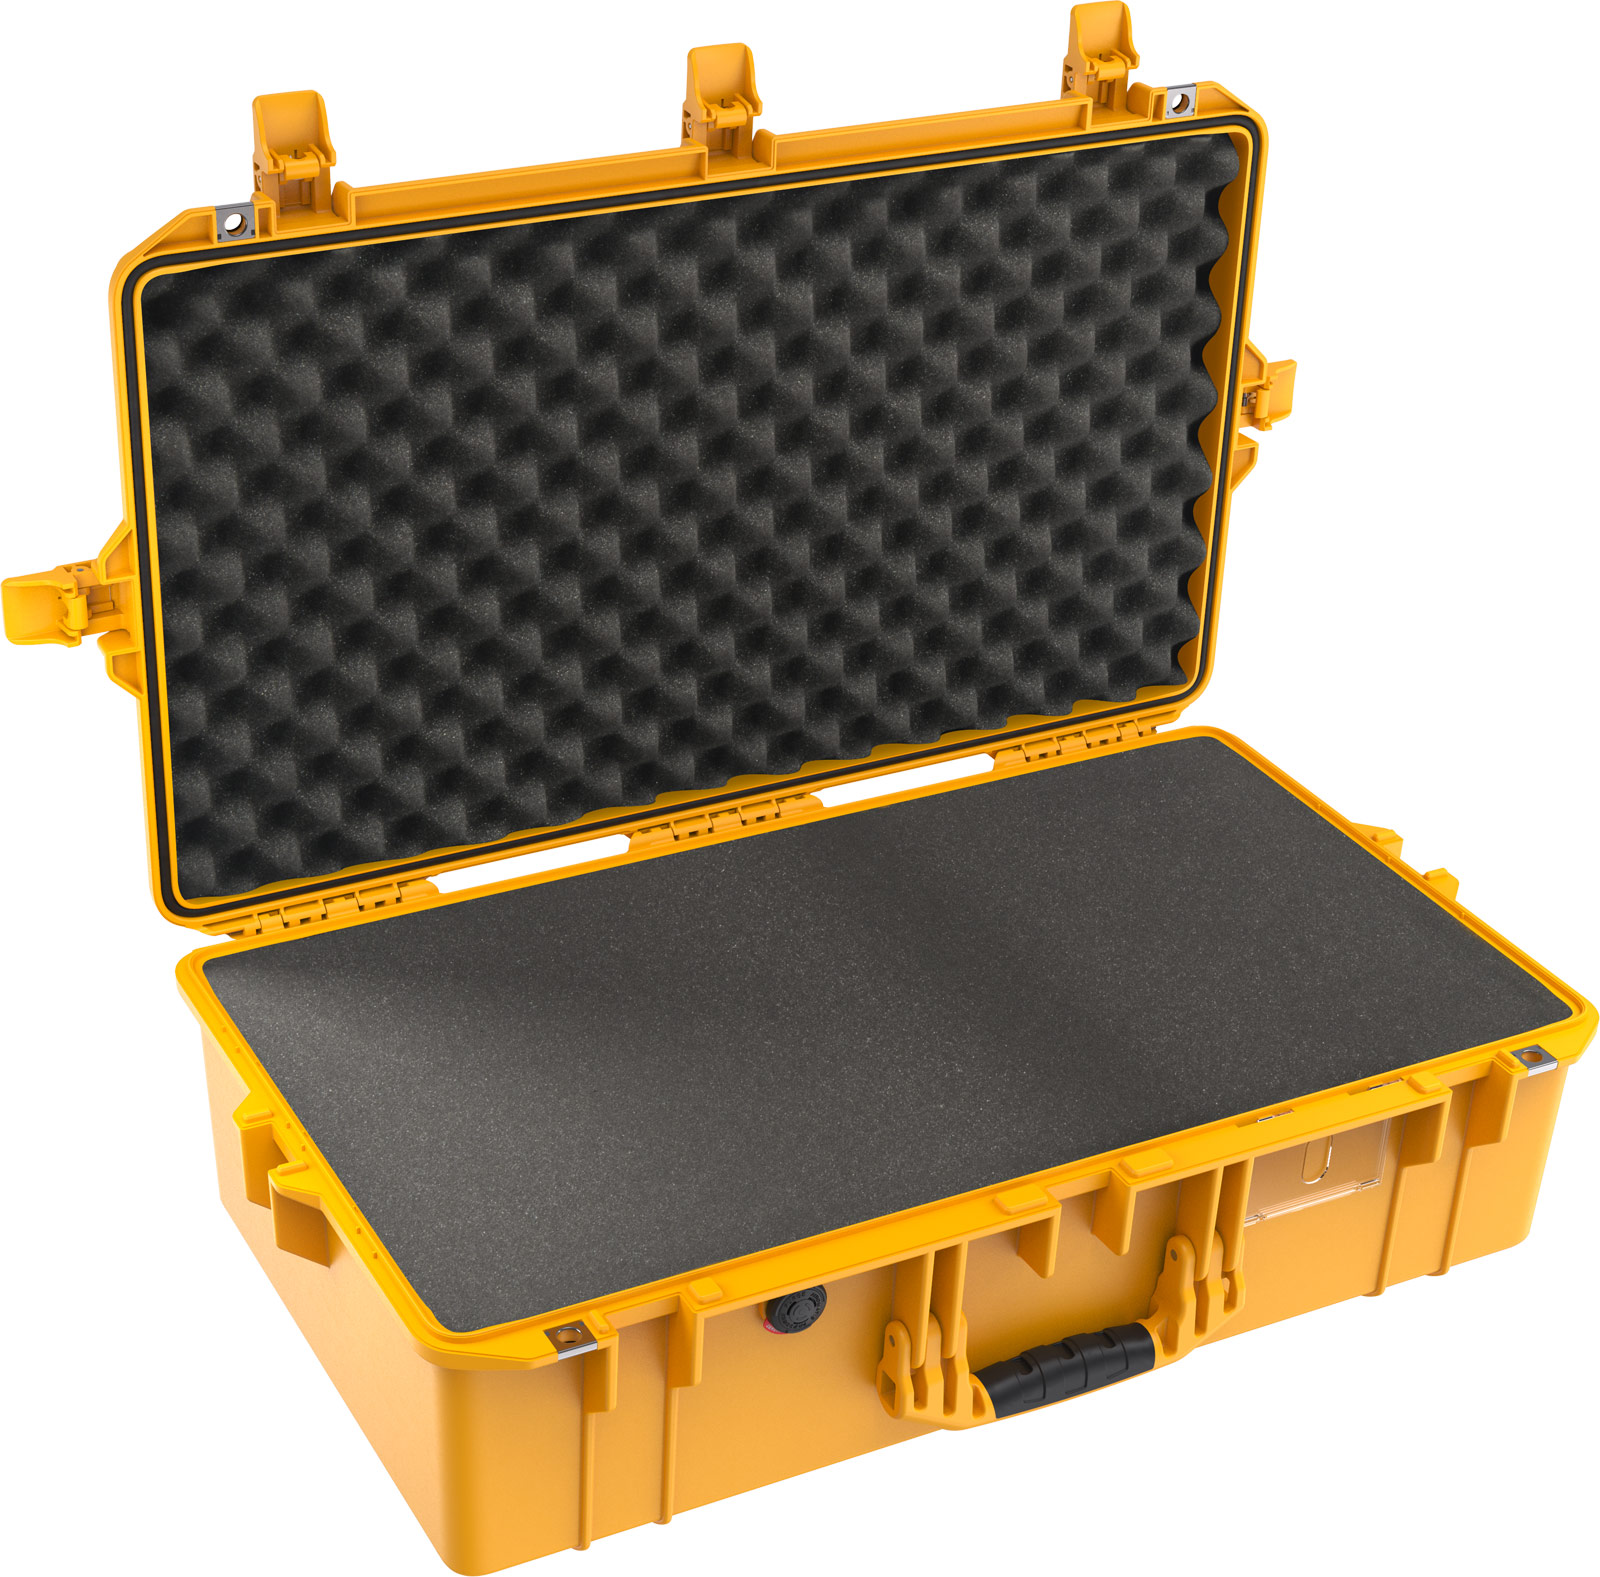 buy pelican air 1605 shop yellow foam firearm case